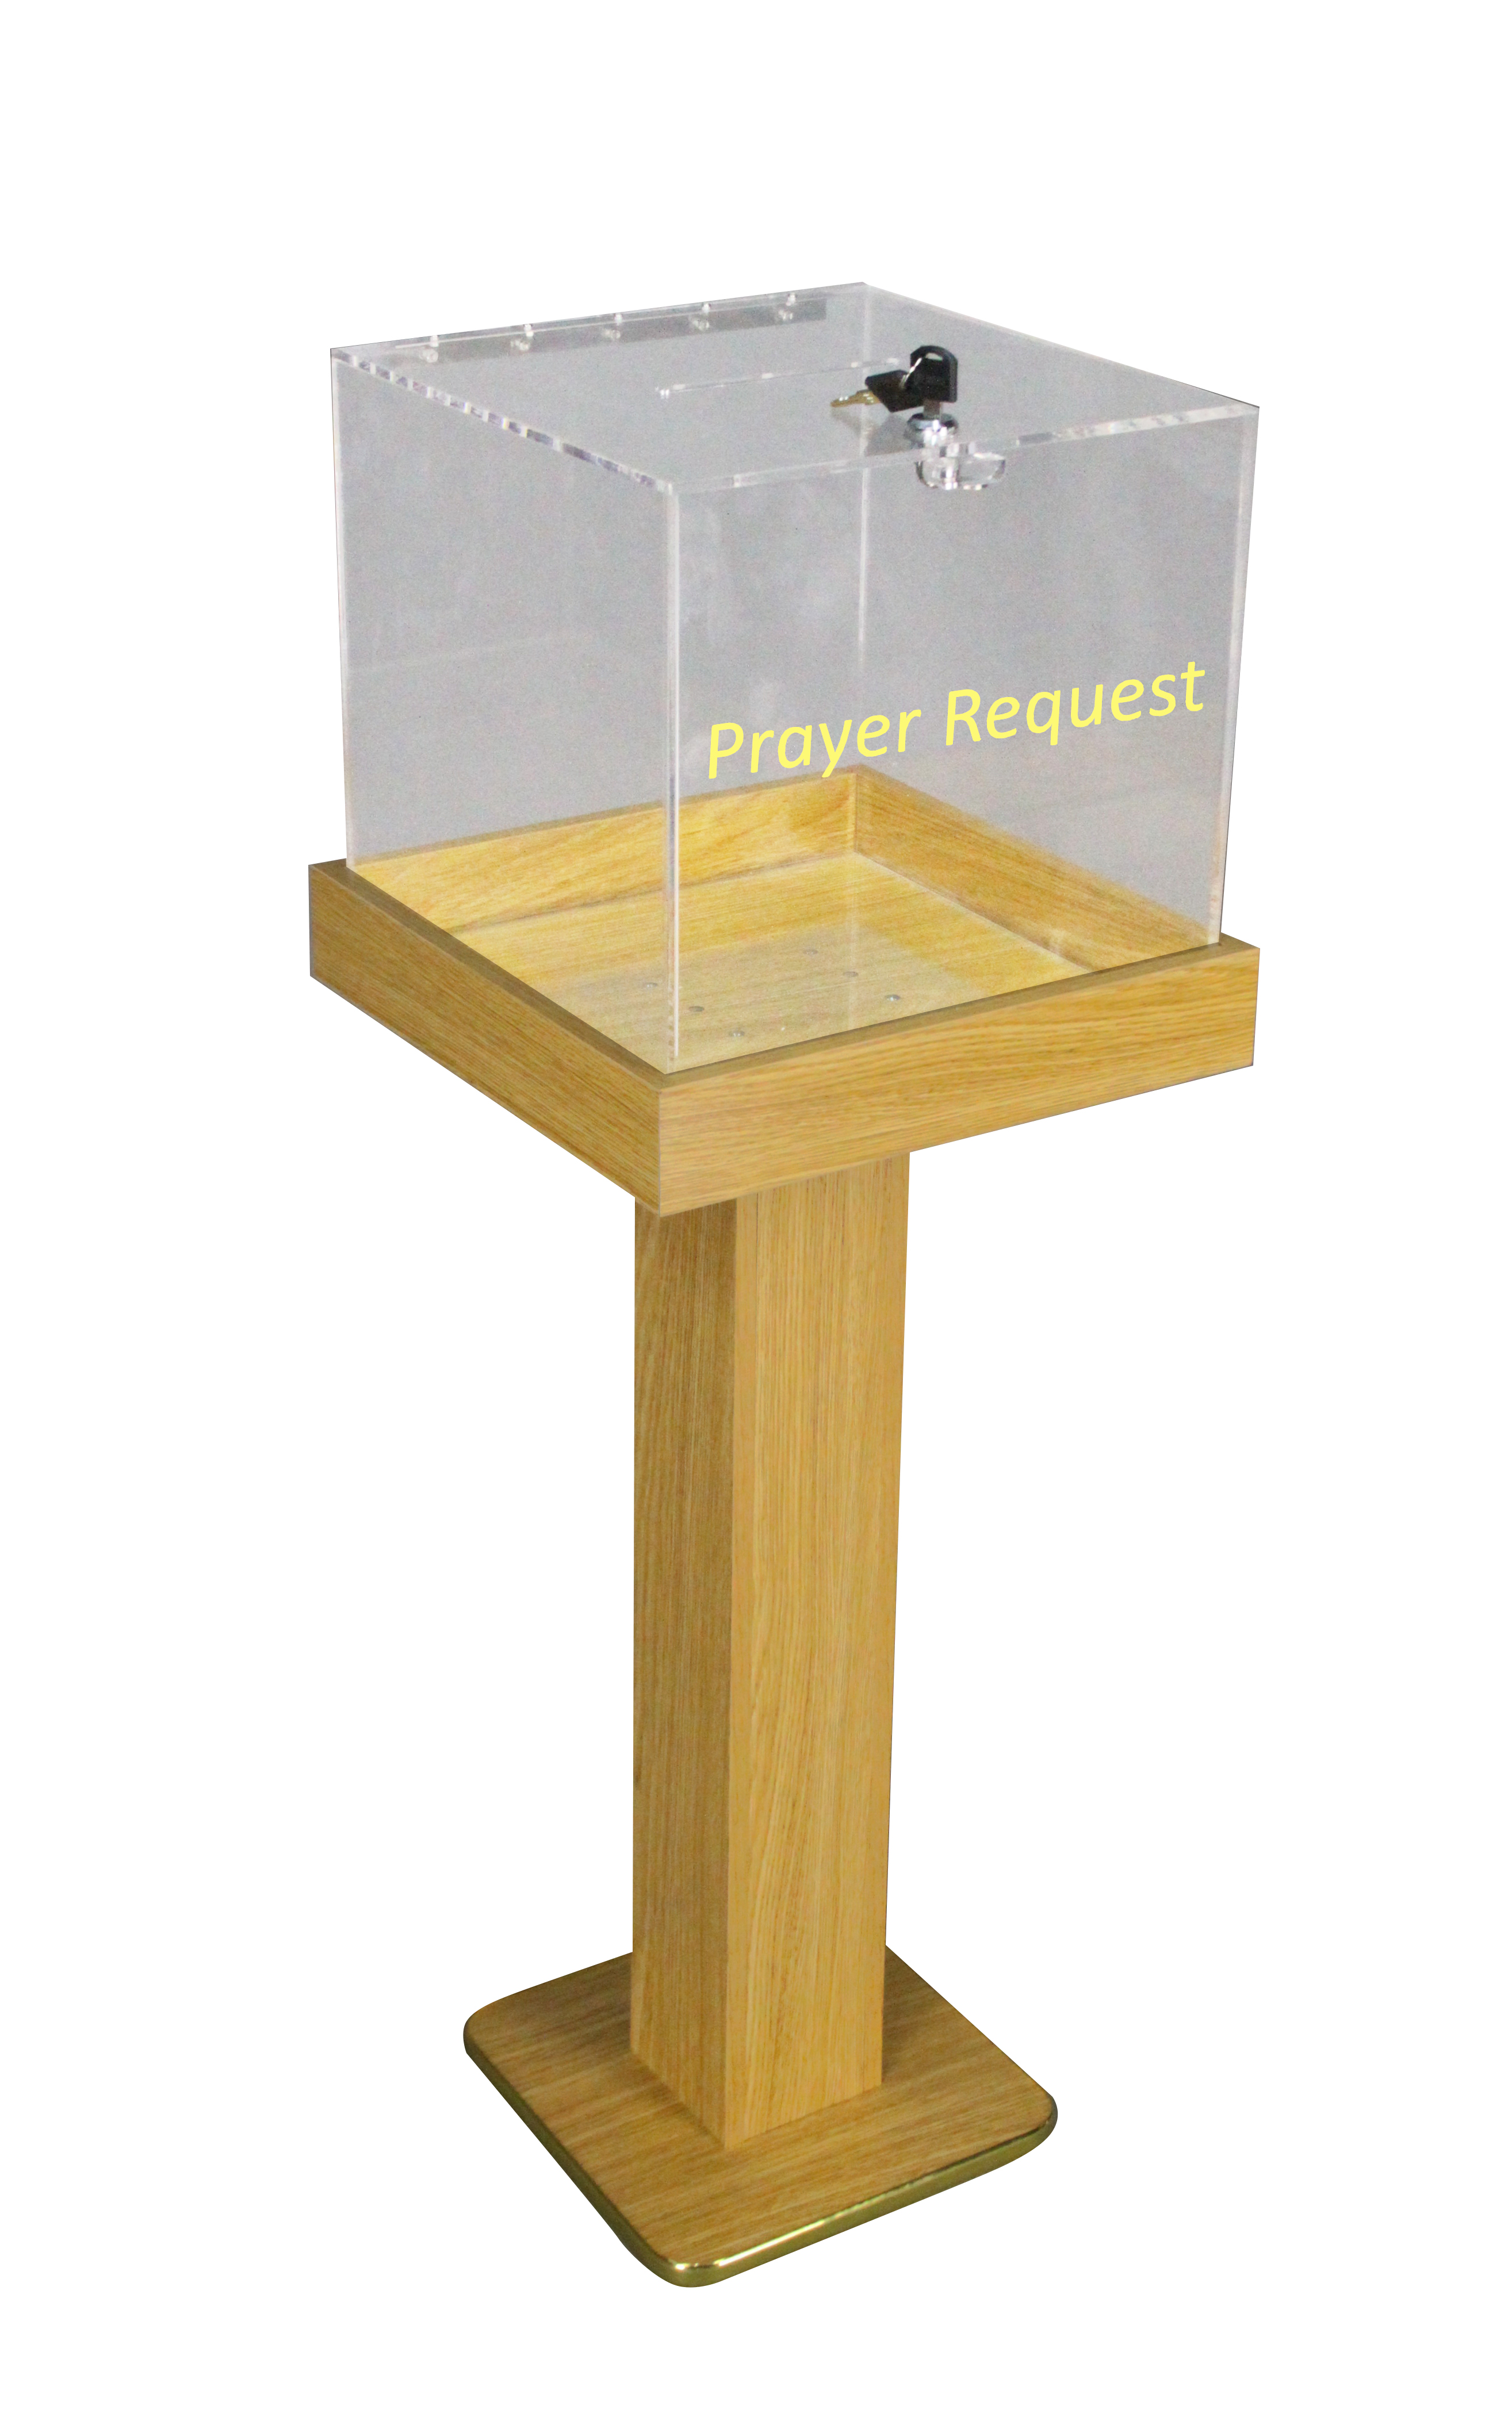 Acrylic Offering Boxes : Wood acrylic large floor standing tithing box offering